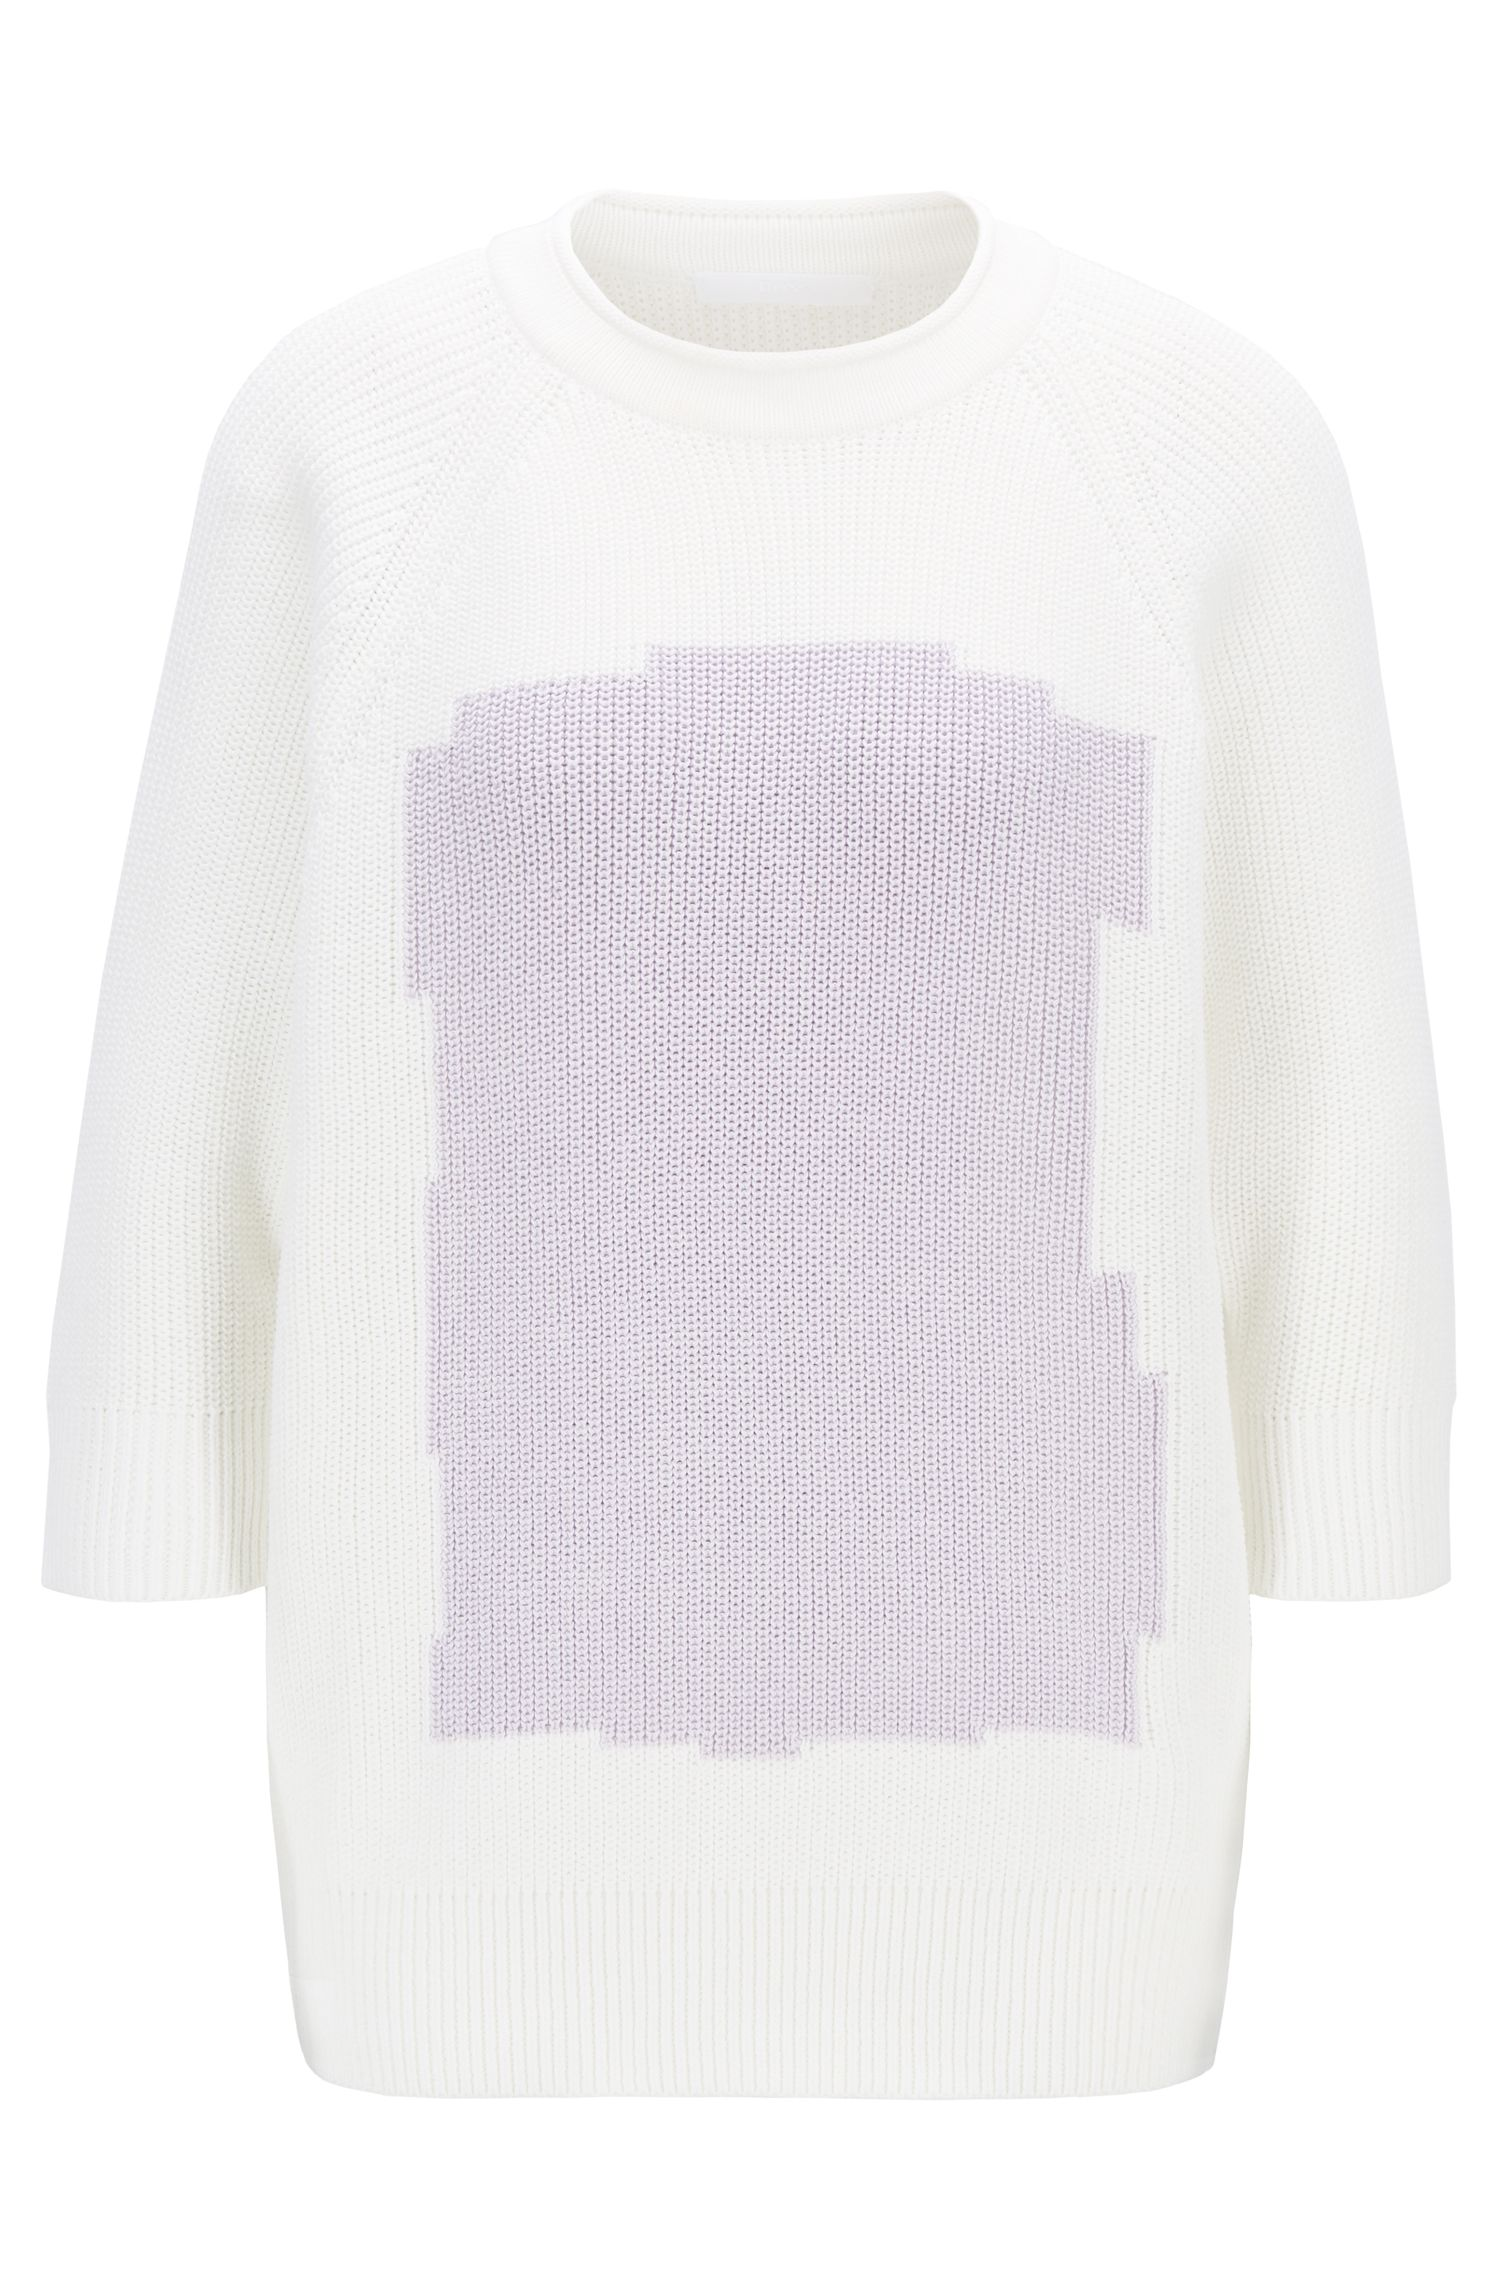 Relaxed-fit cotton sweater with color-block intarsia, Patterned